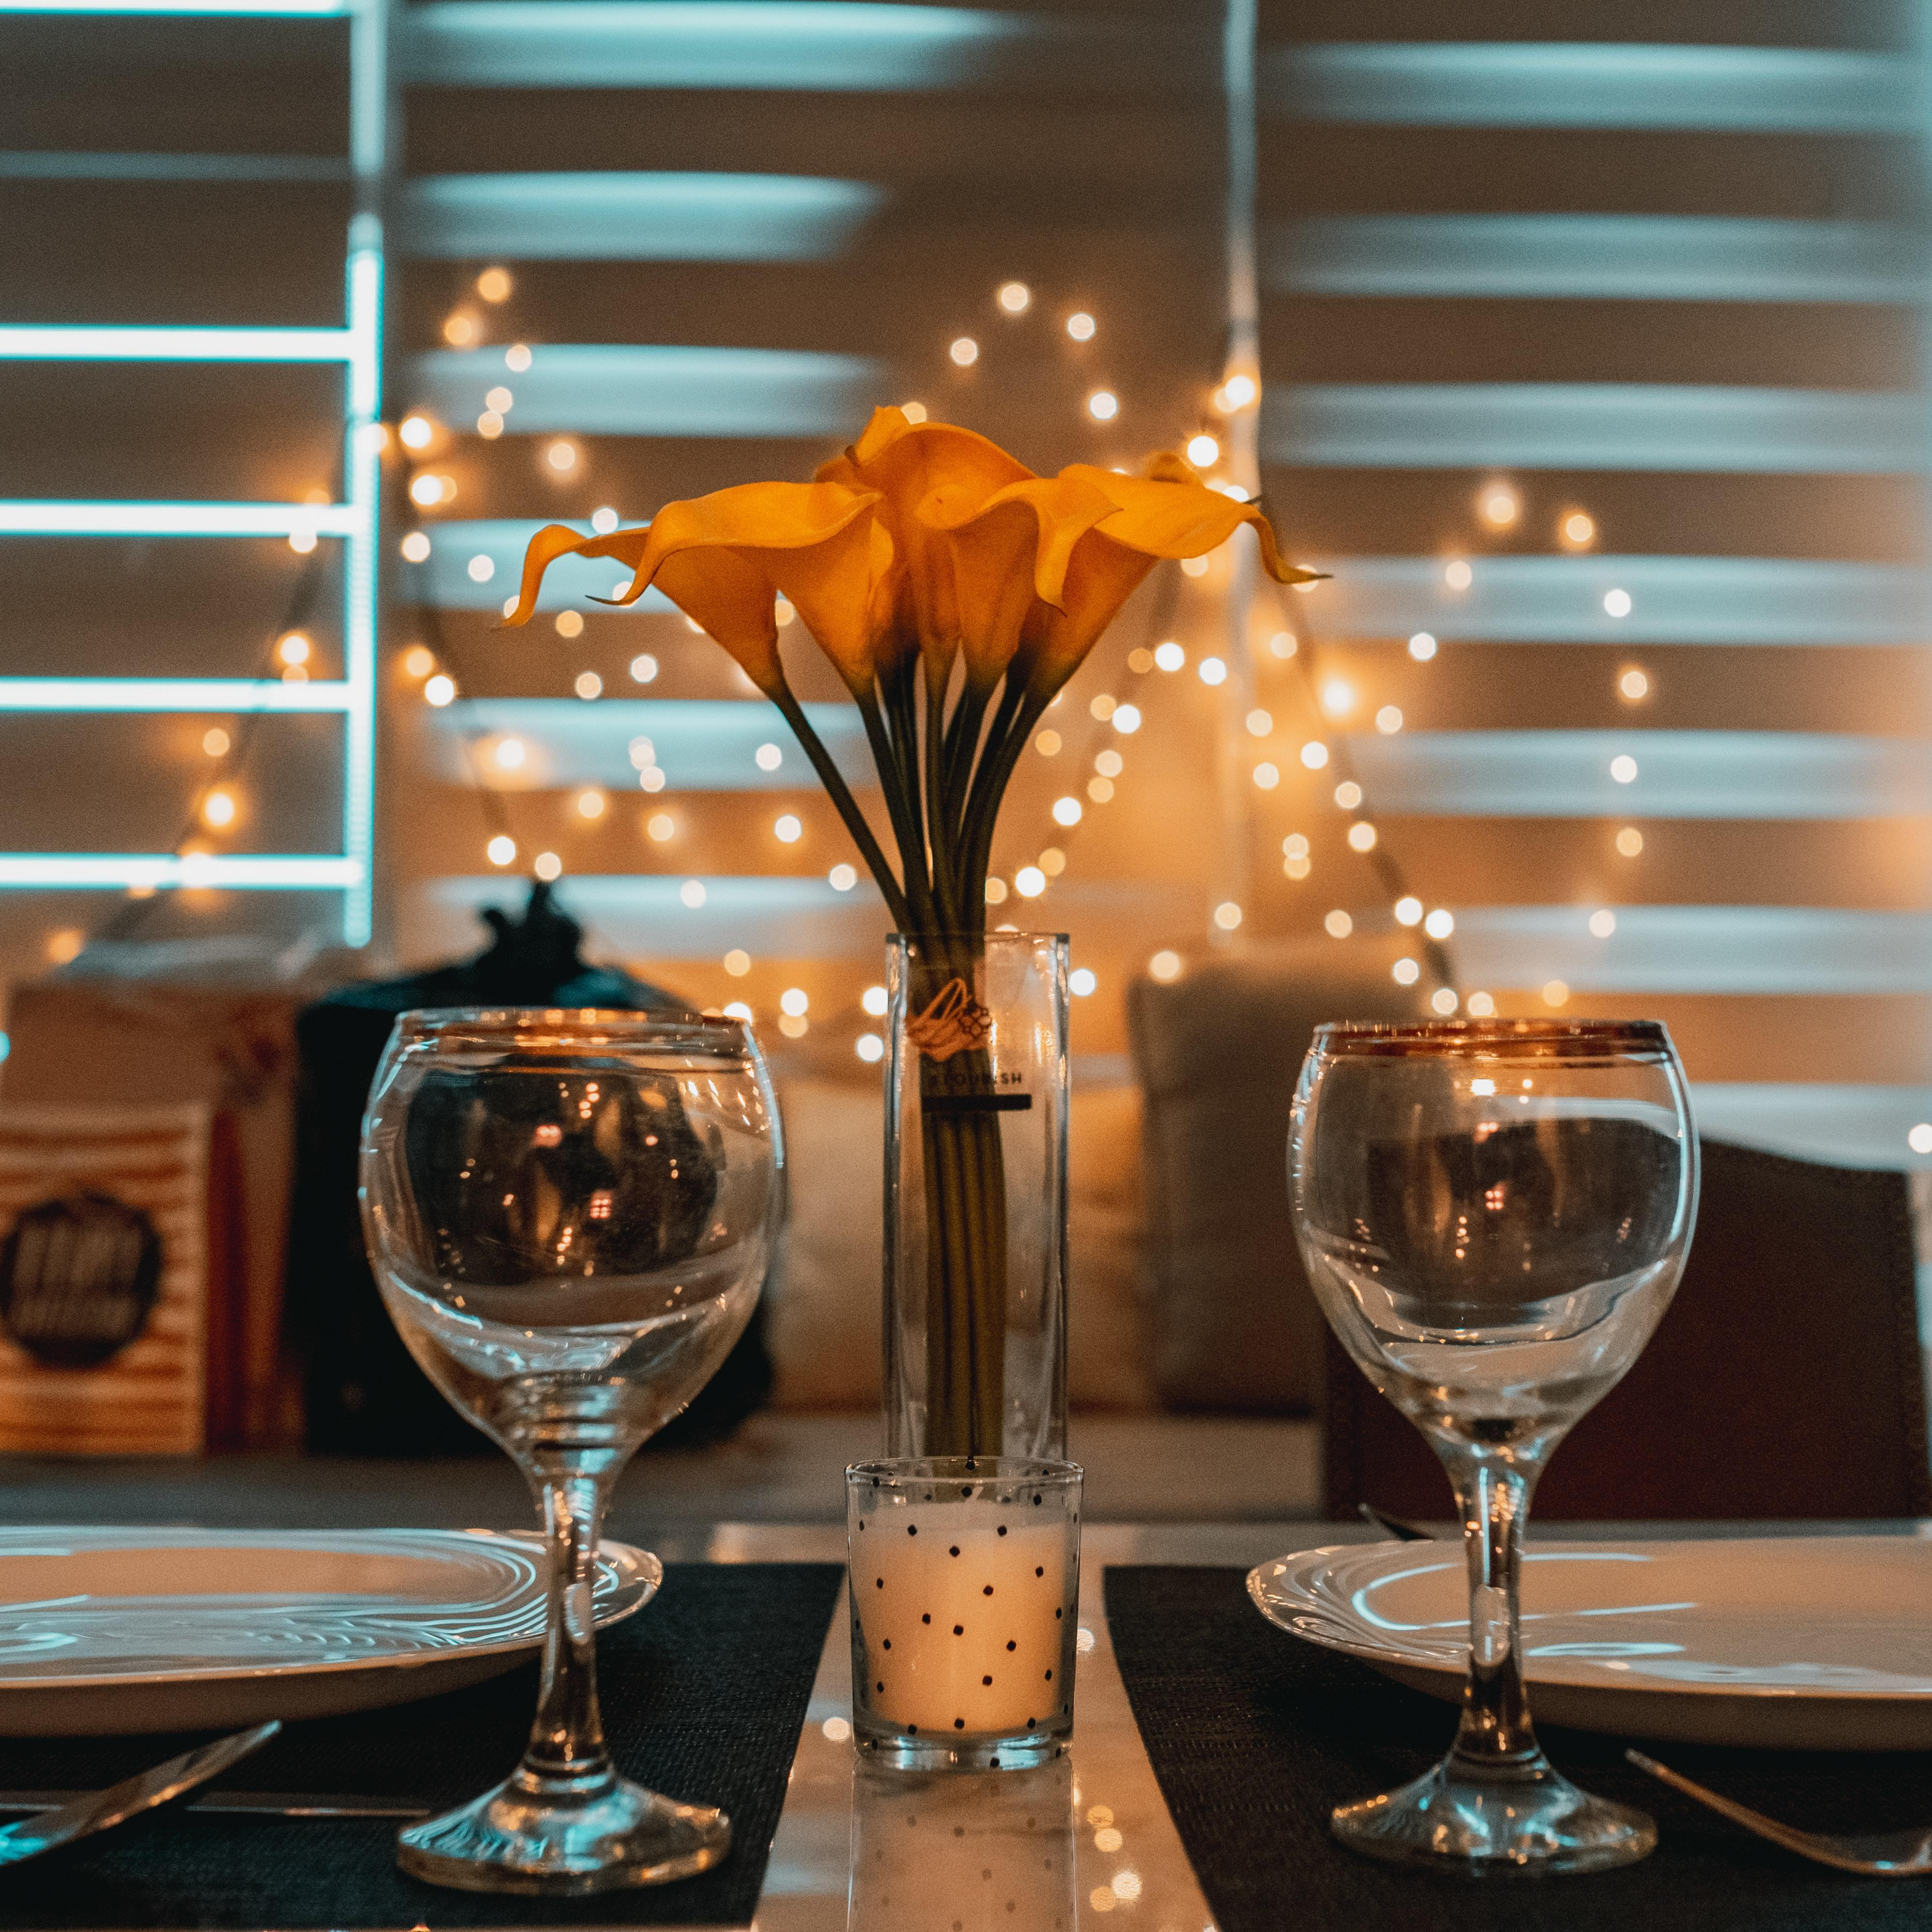 Best Dinner Date Spots in Vancouver, WA-image